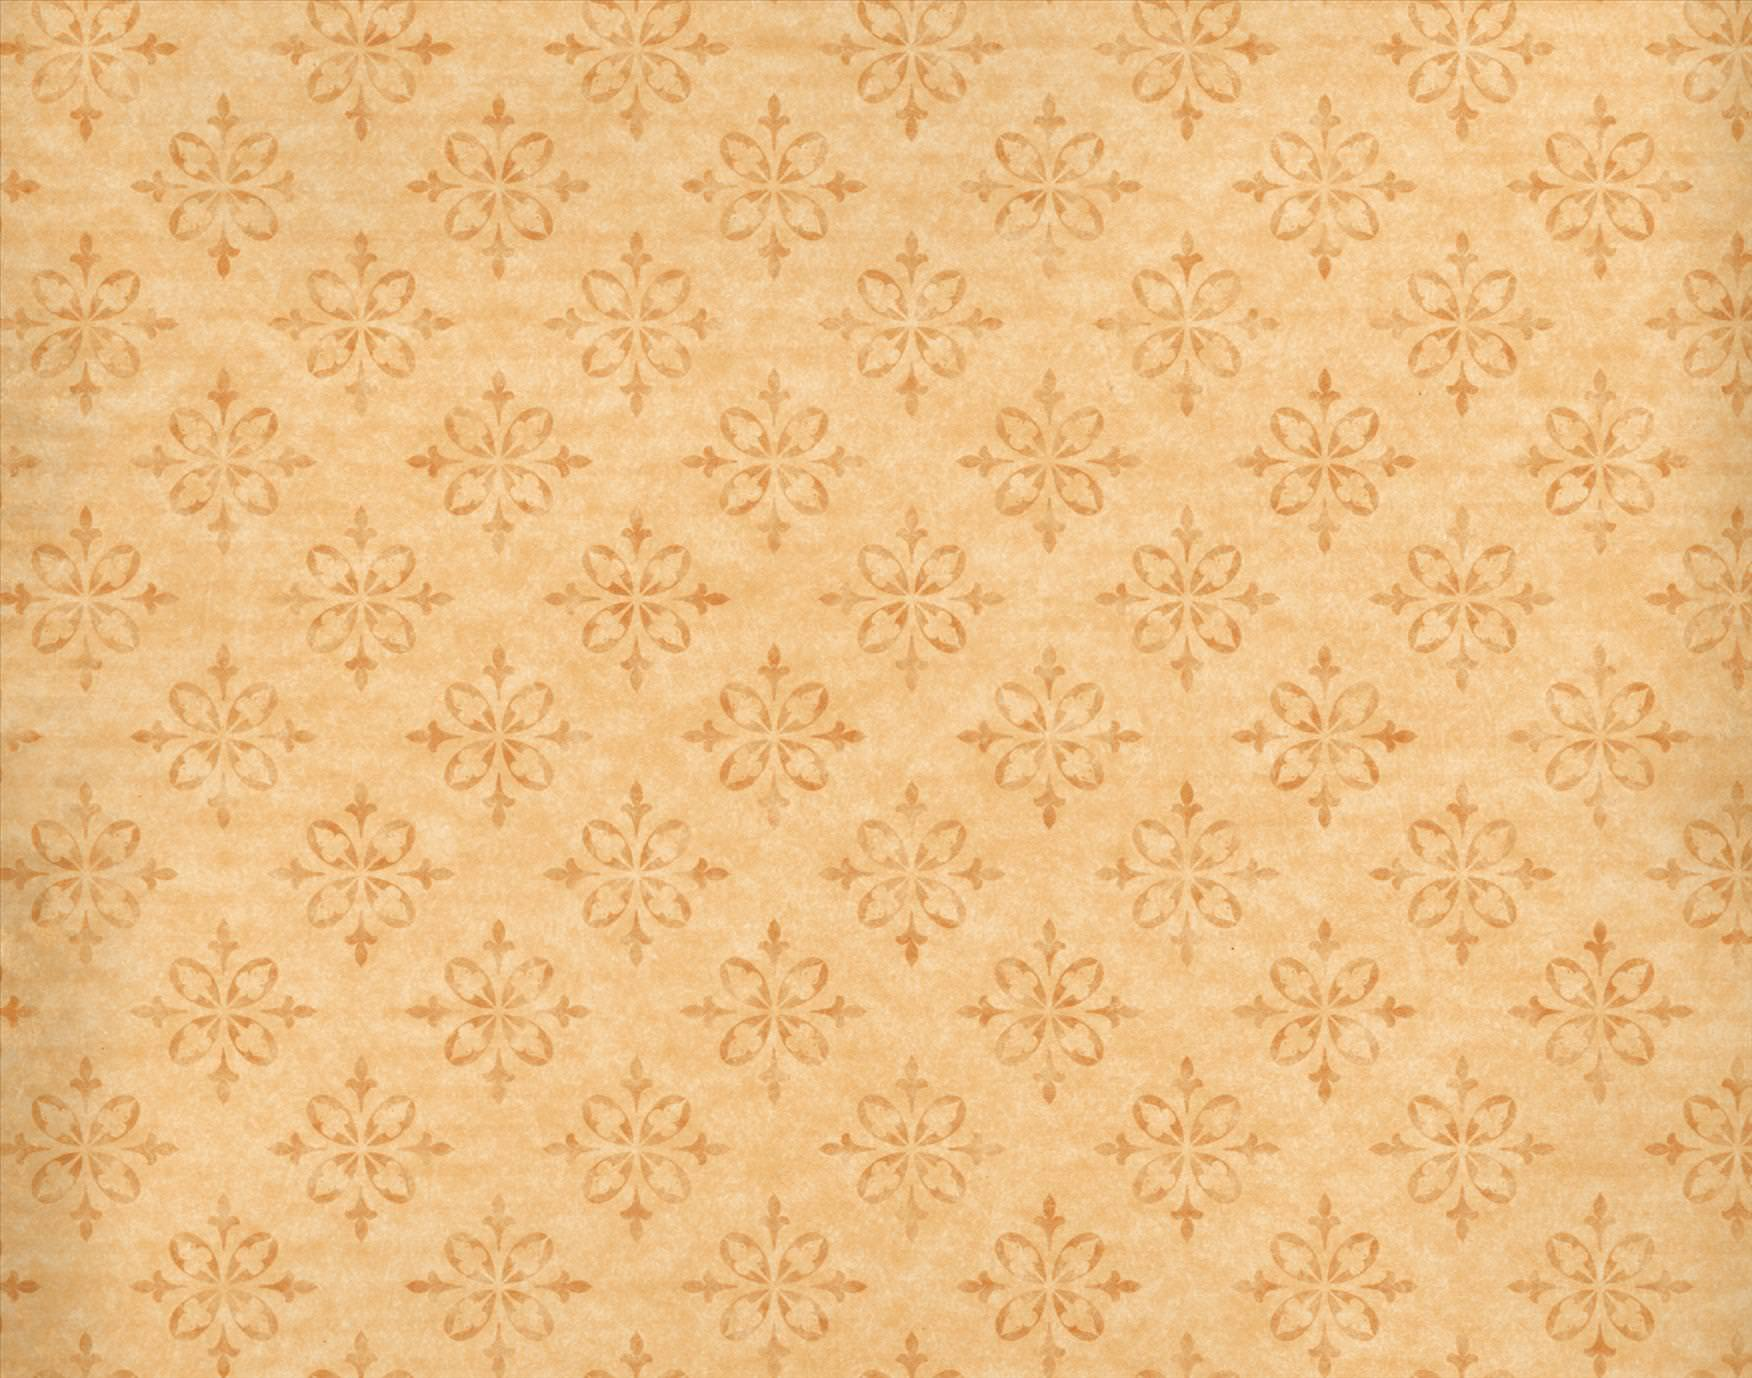 brownbackground